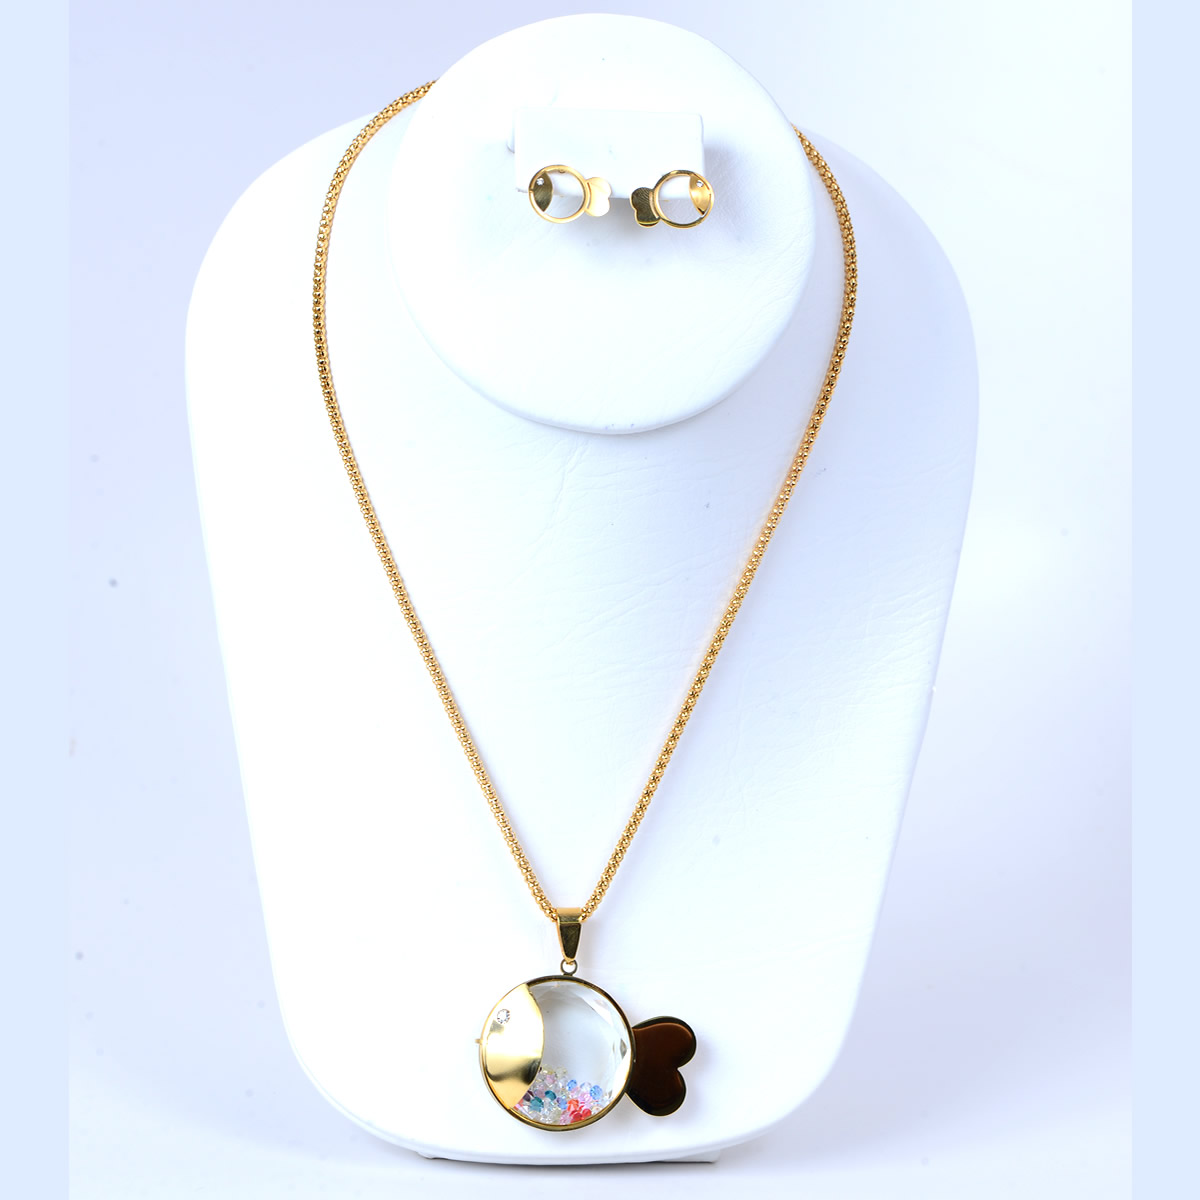 Adorable Fish Necklace and Earrings Set